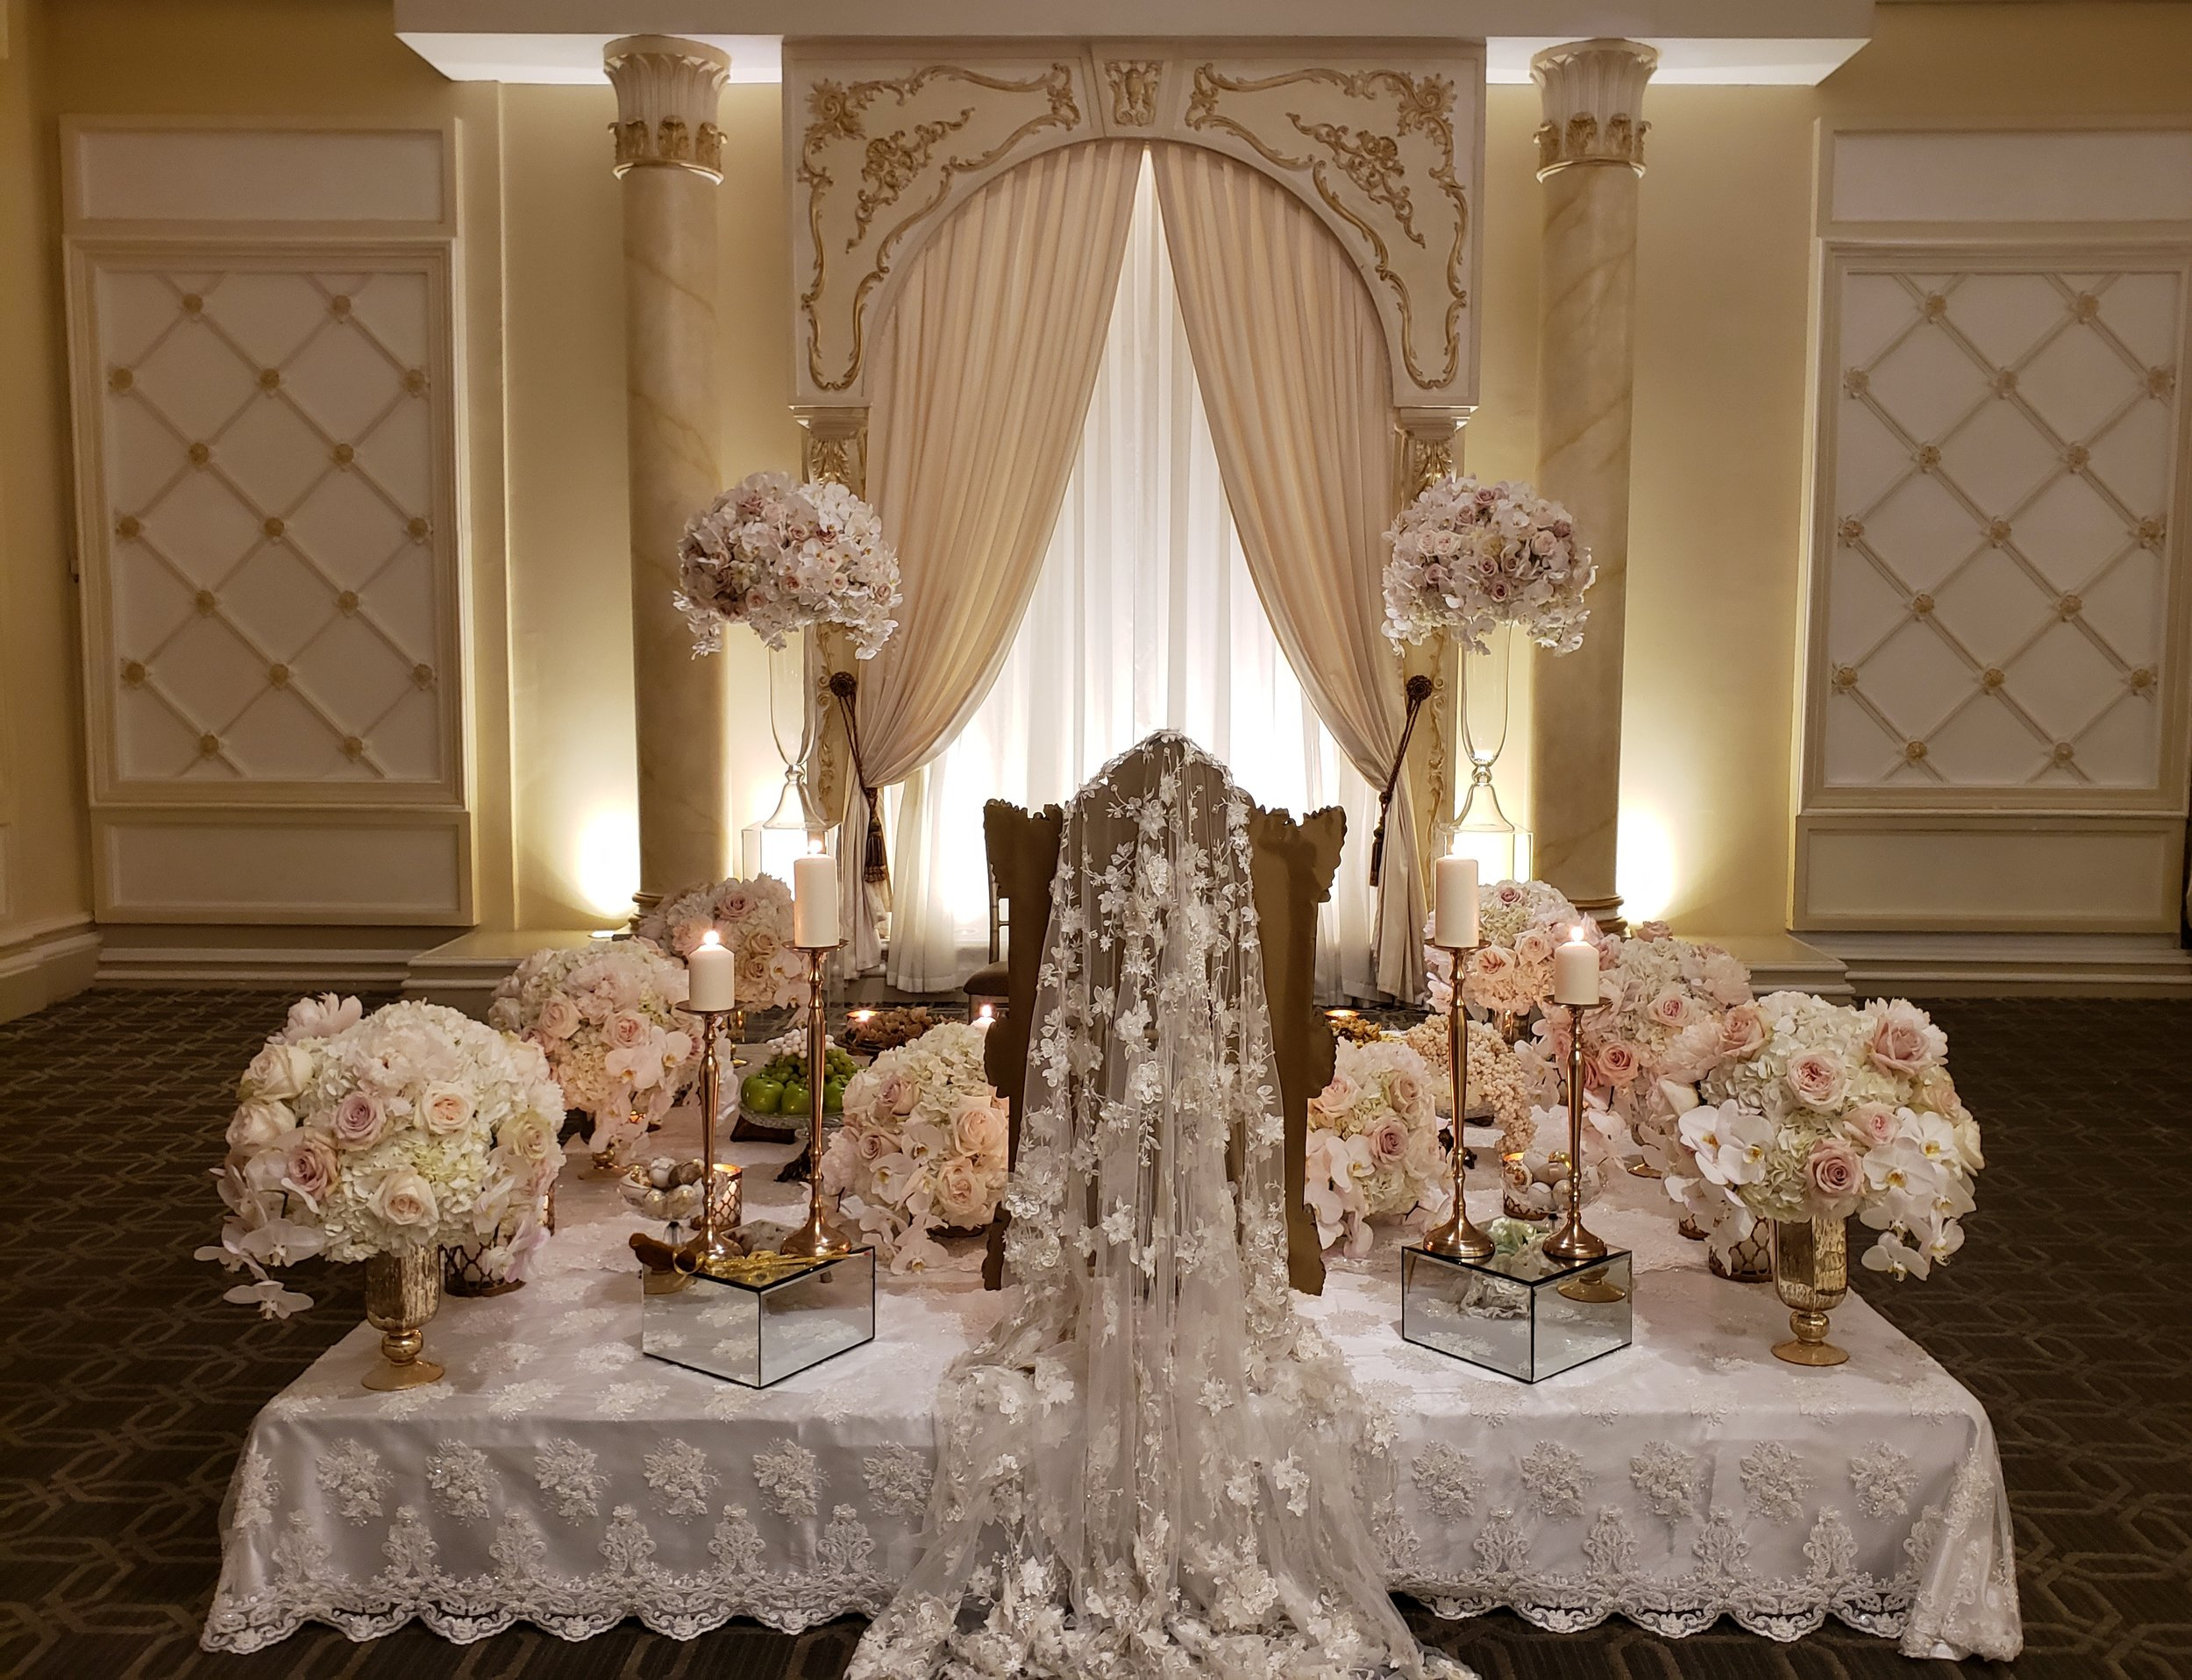 Antique Sofreh- Paradise Banquet Hall